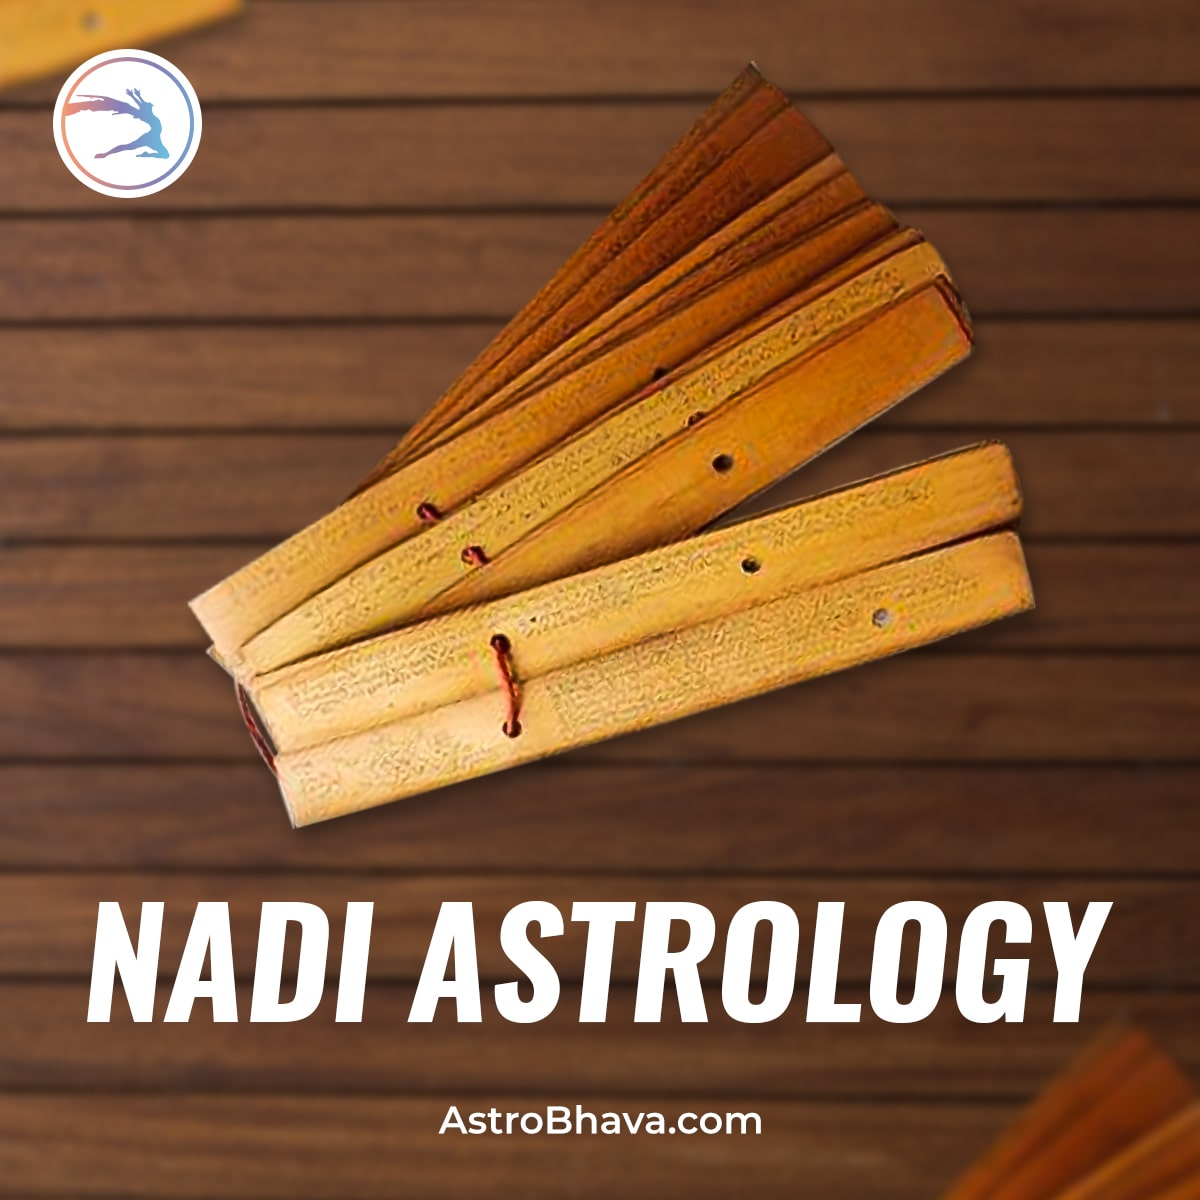 Get the Best Online Nadi Astrology Consultation from AstroBhava 1